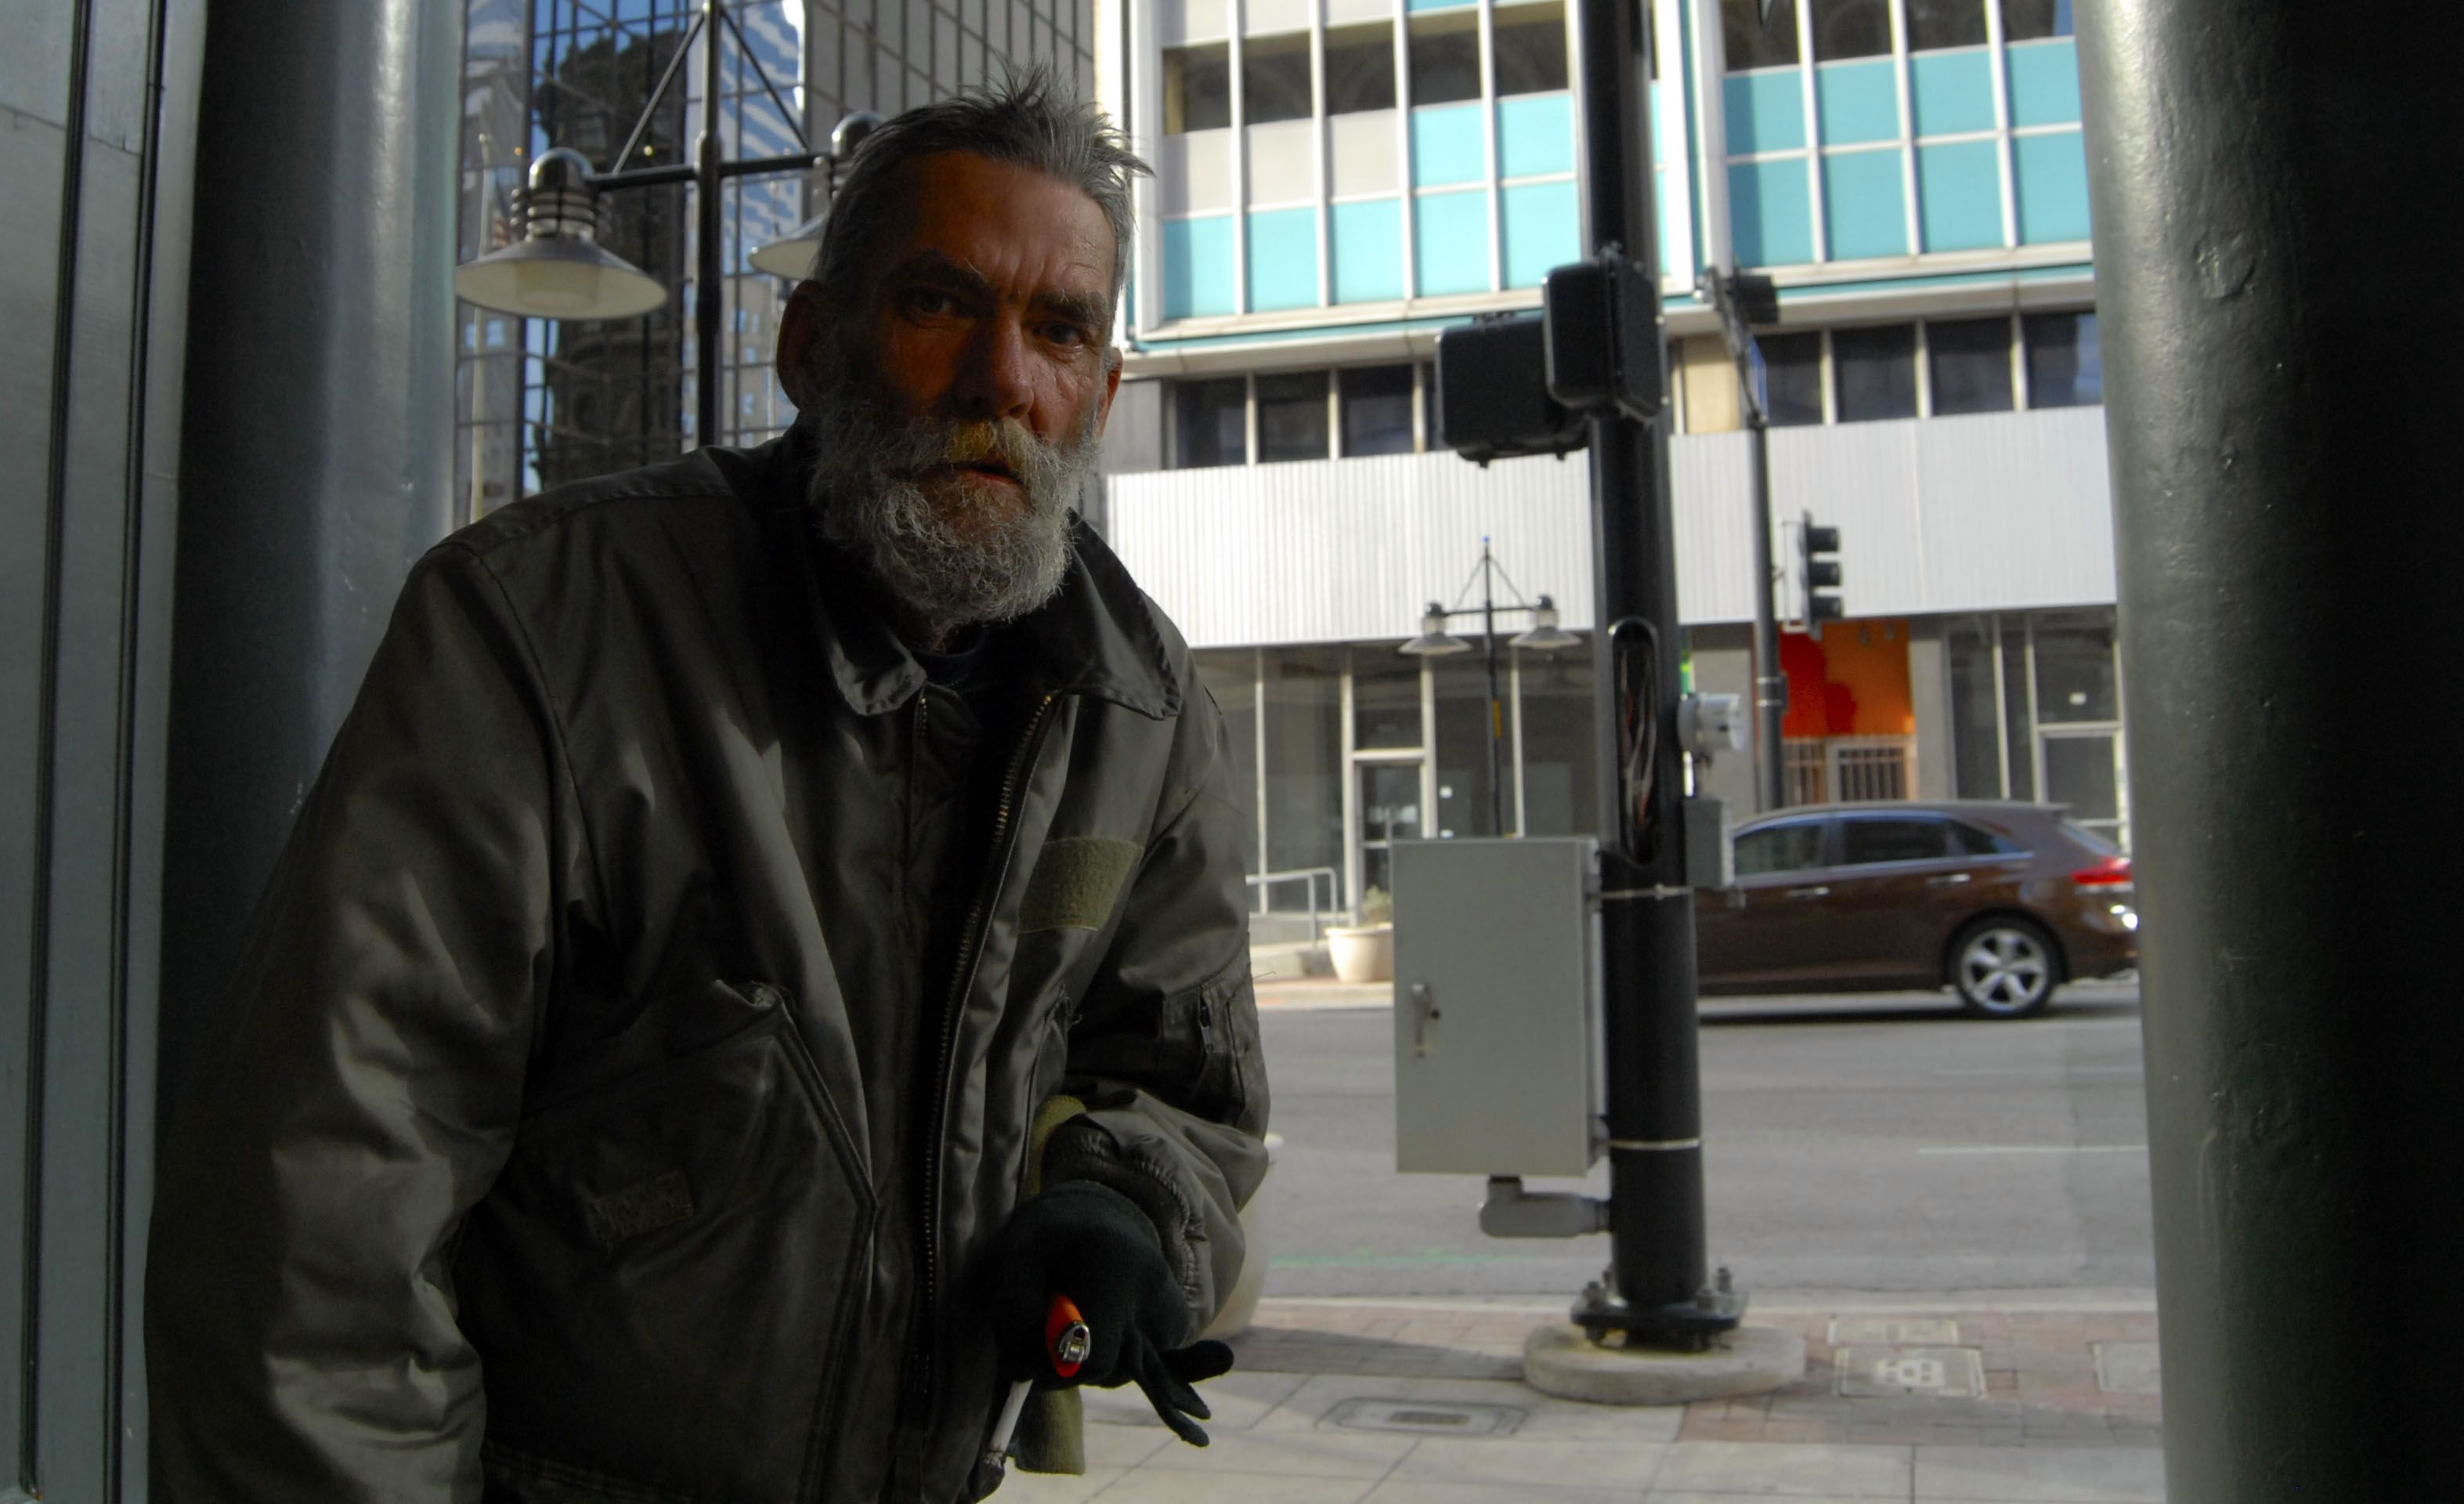 Davey drew a homeless photographer in downtown dallas